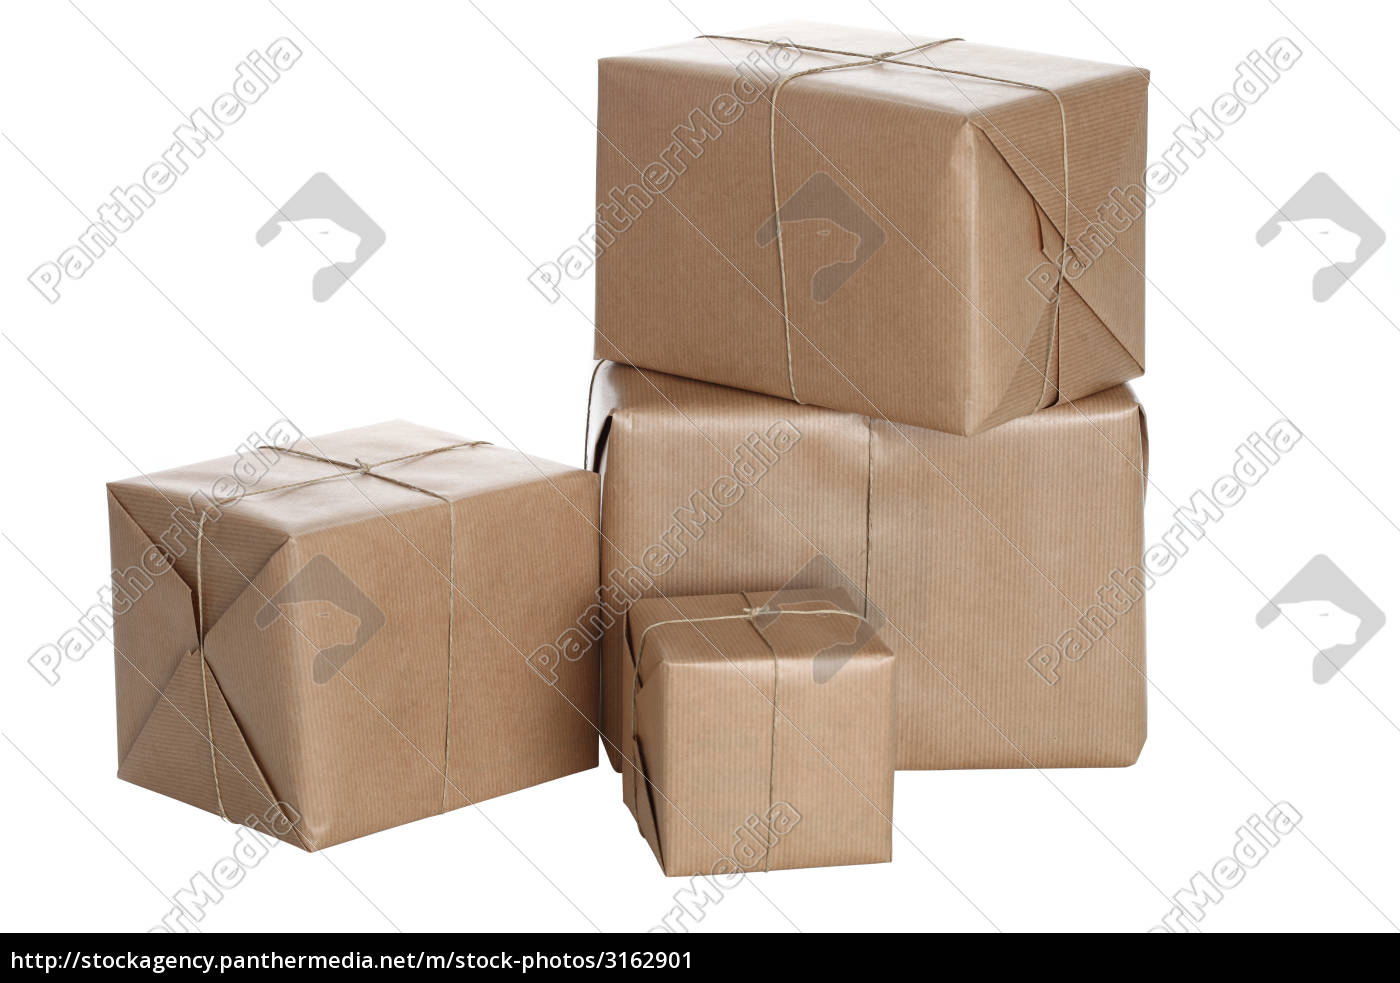 isolated, parcel - 3162901